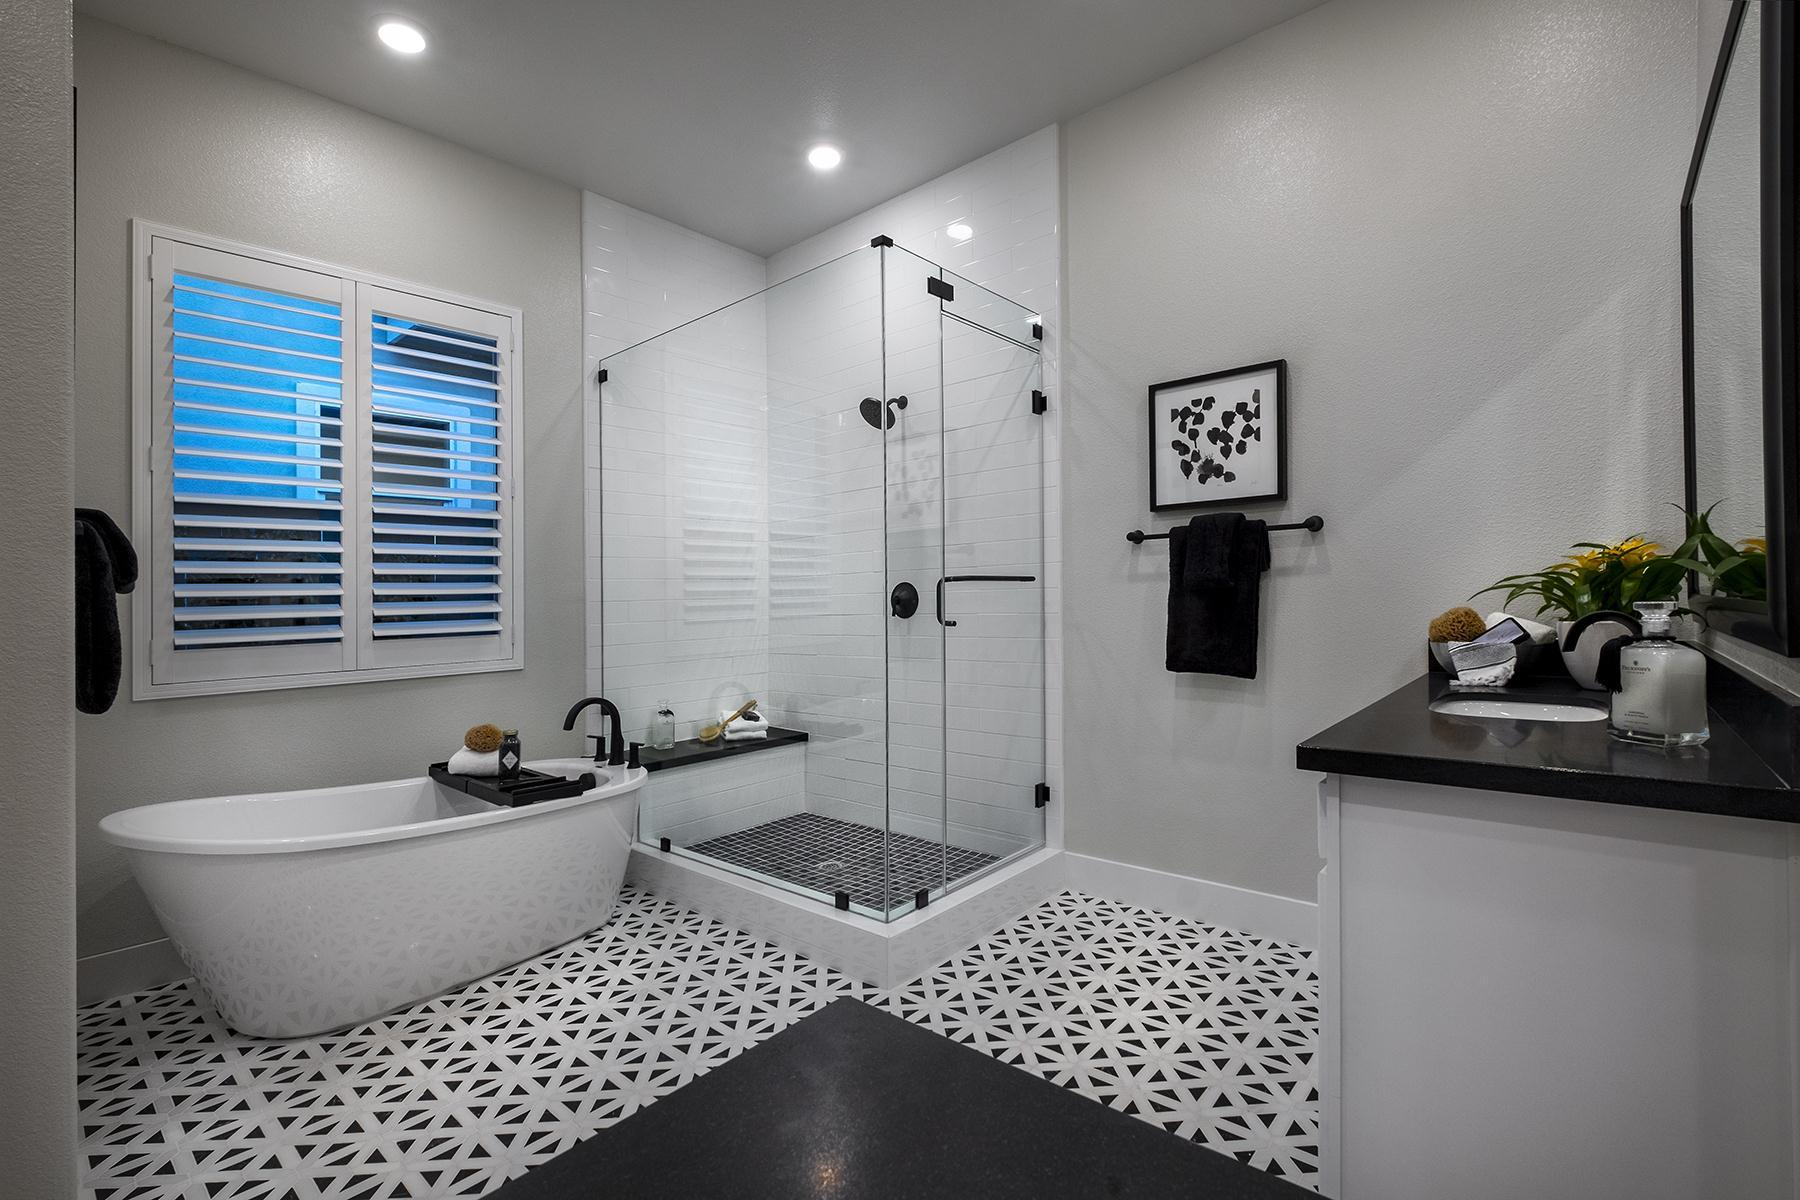 Bathroom featured in the Plan 1 By The New Home Company in Sacramento, CA